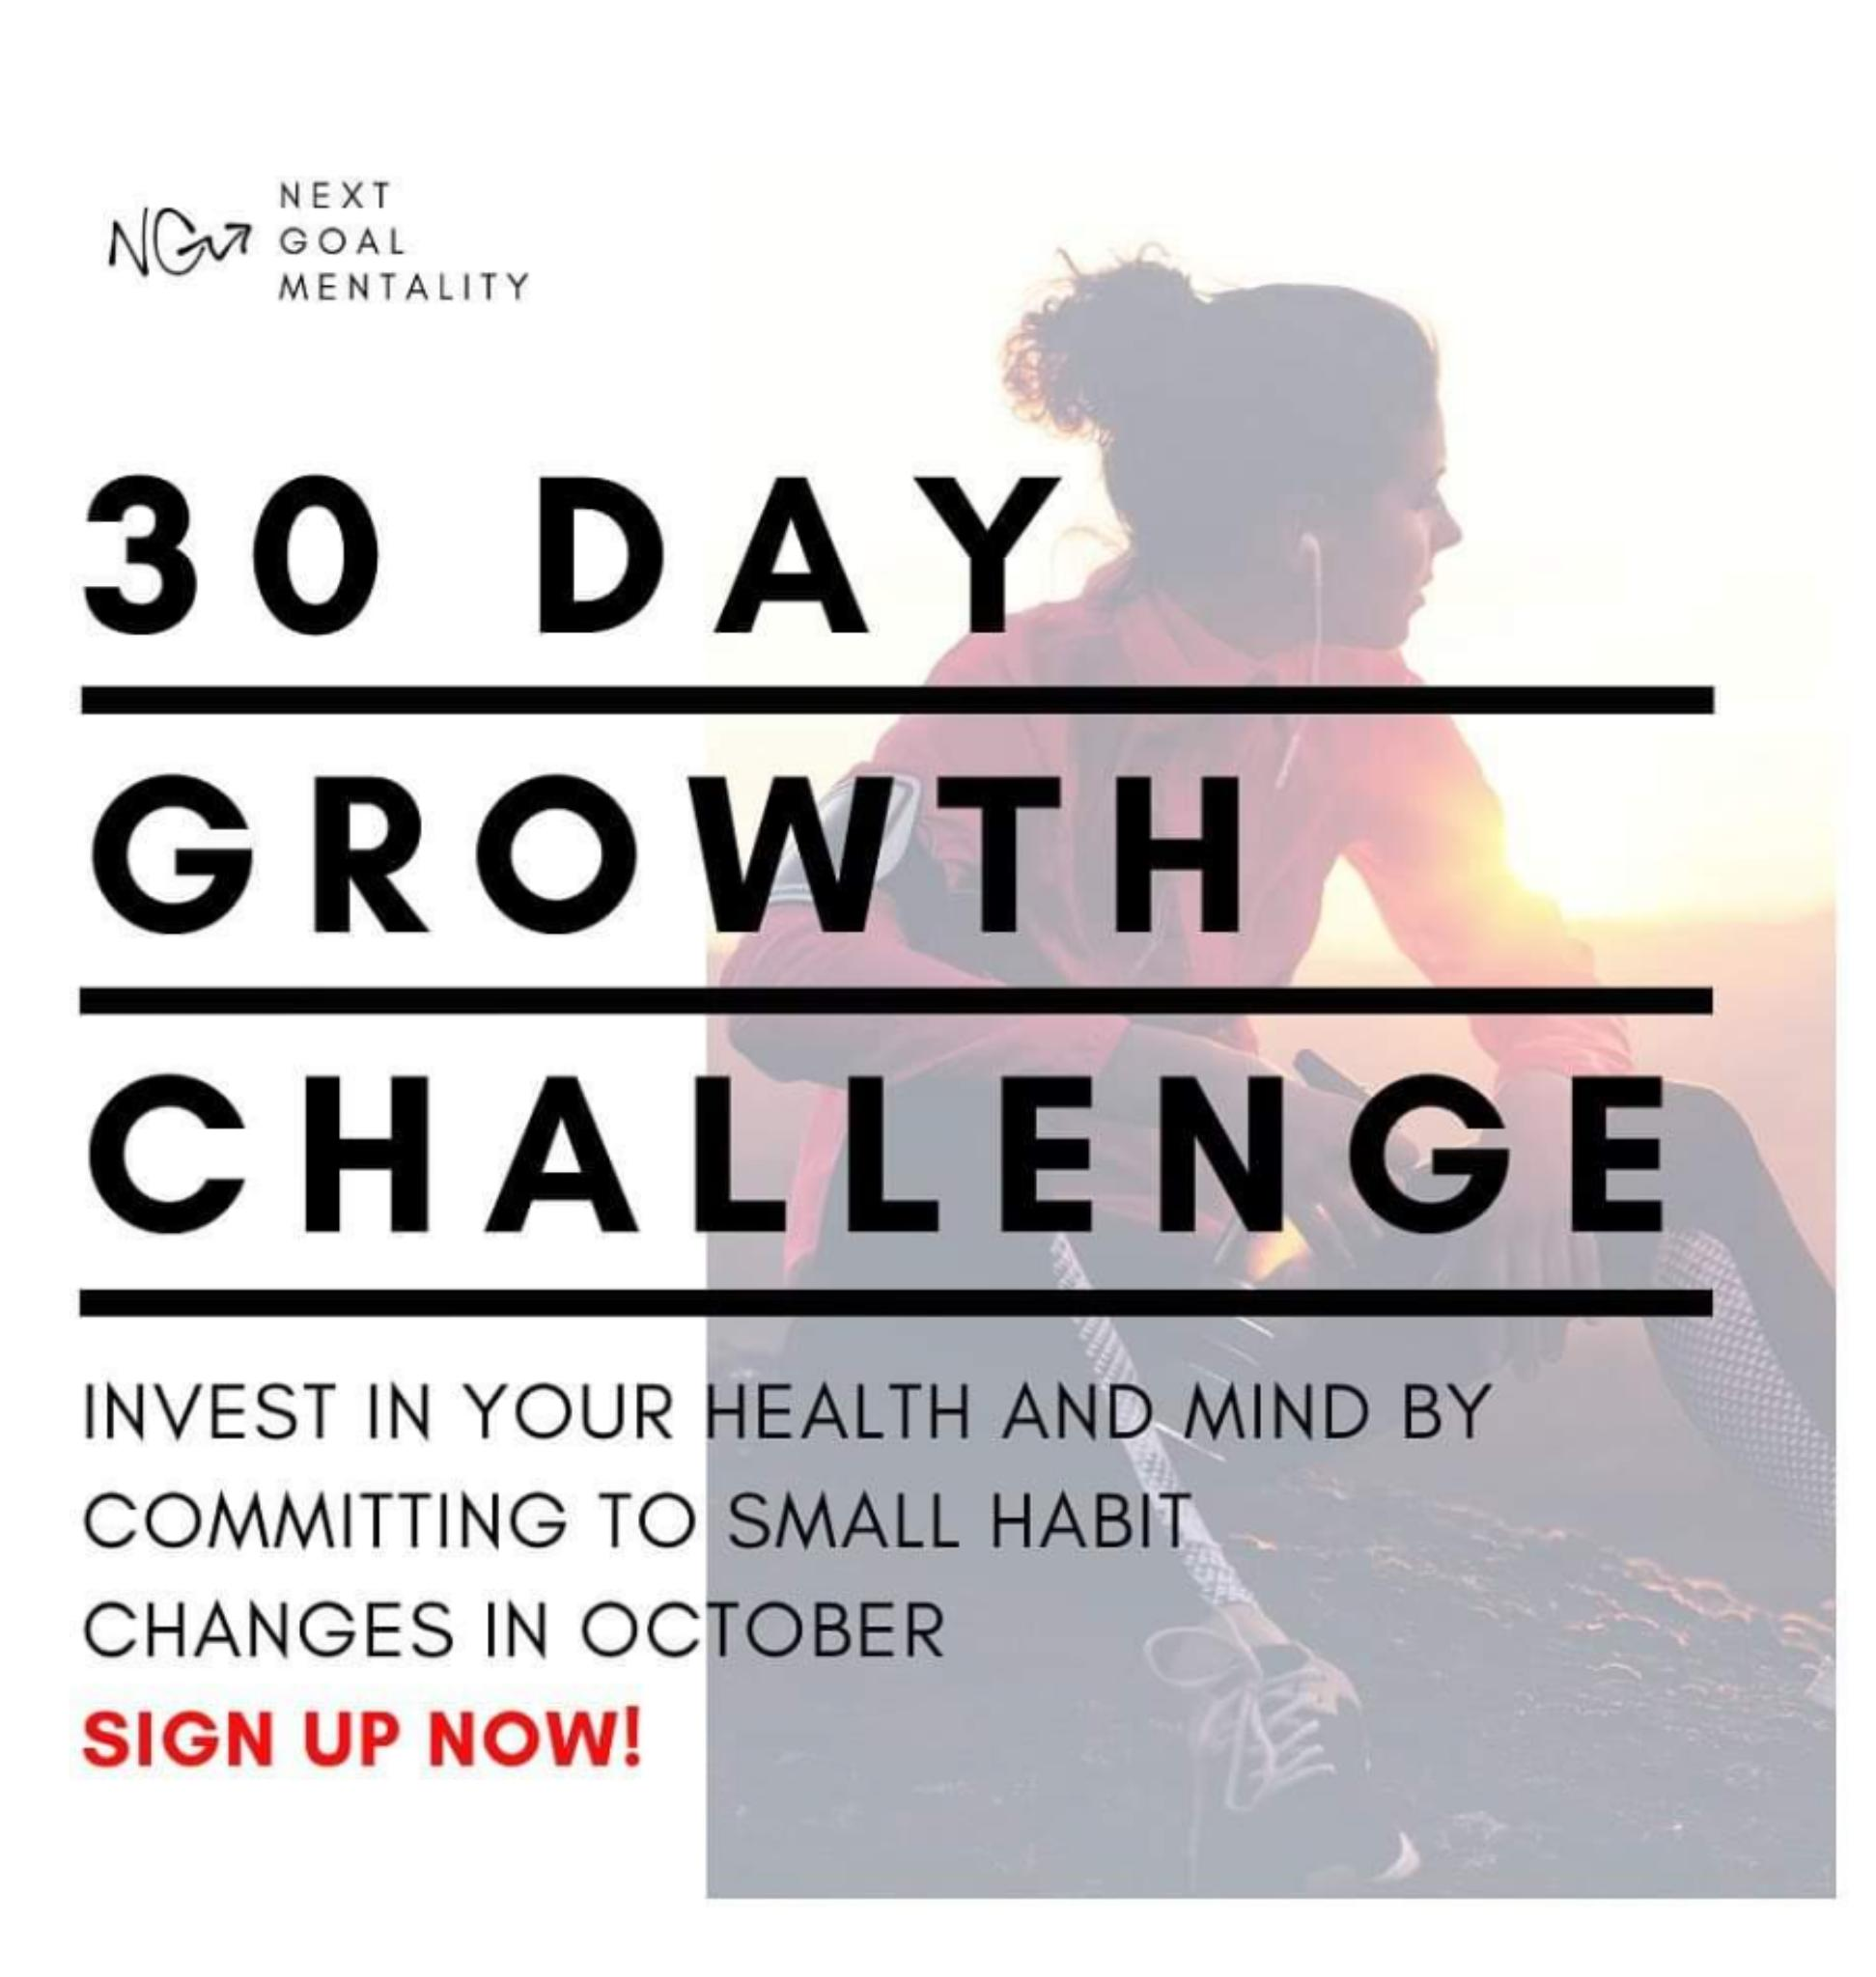 [image] who's ready for a 30 day challenge?